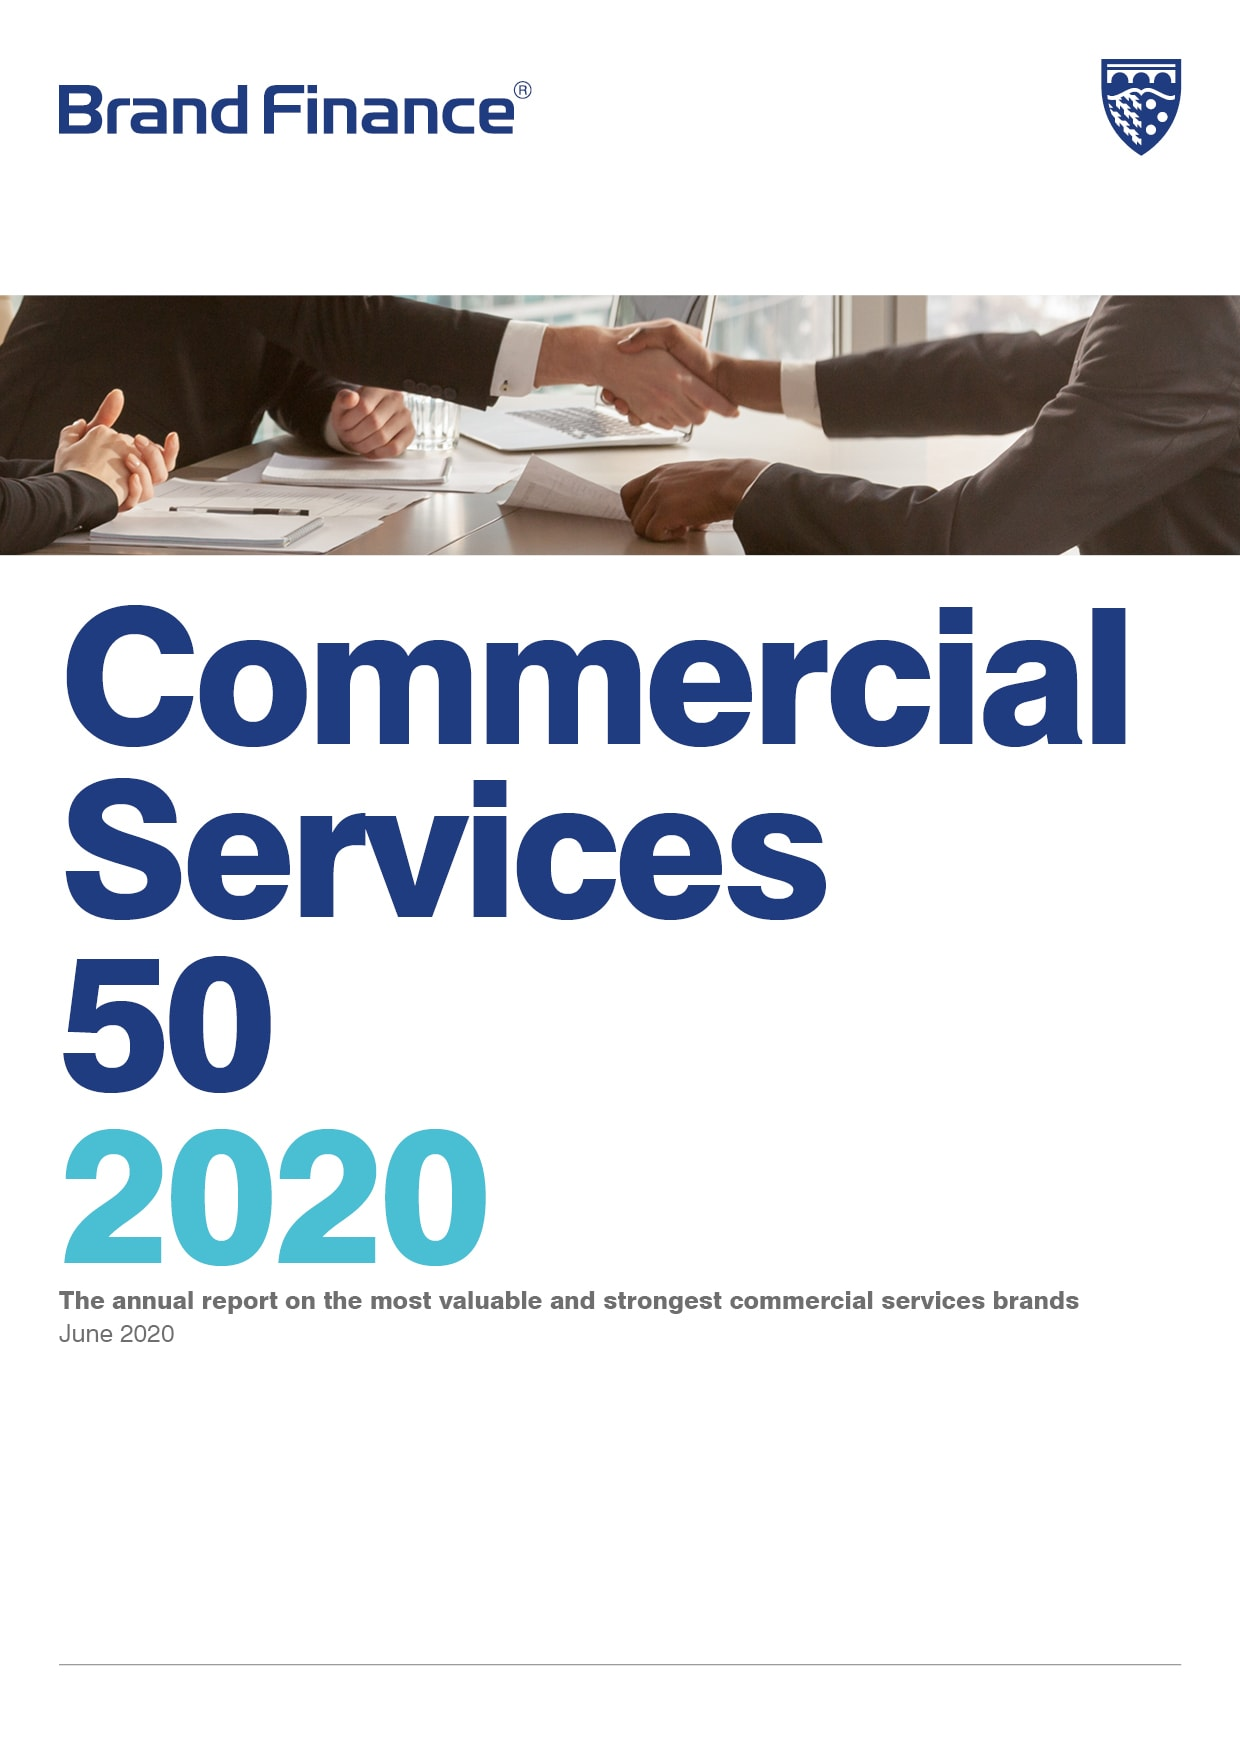 Brand Finance Commercial Services 50 2020